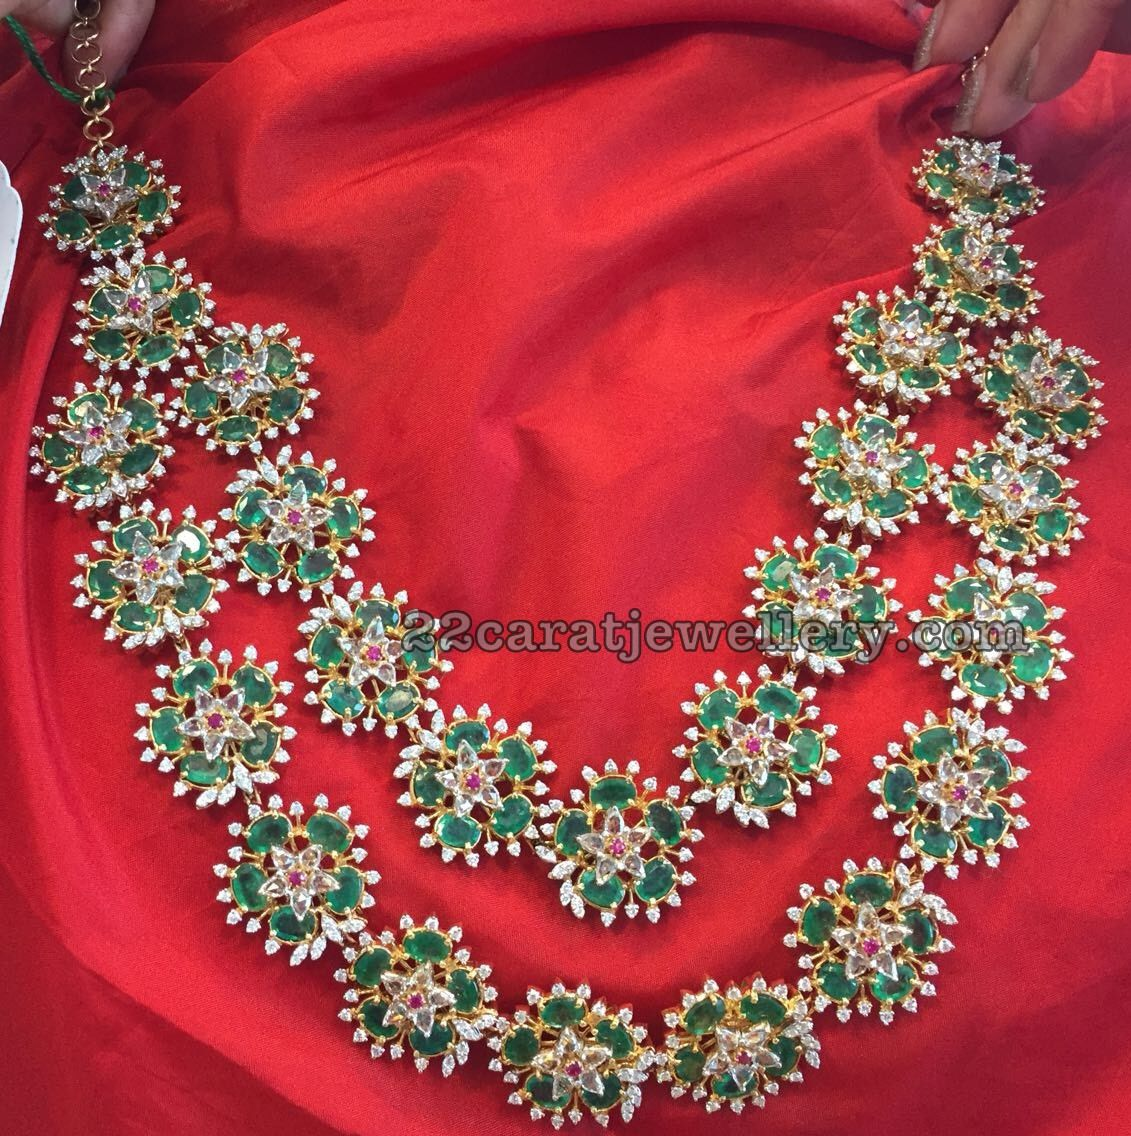 Small pearls necklace with lakshmi pendant earrings floral designs